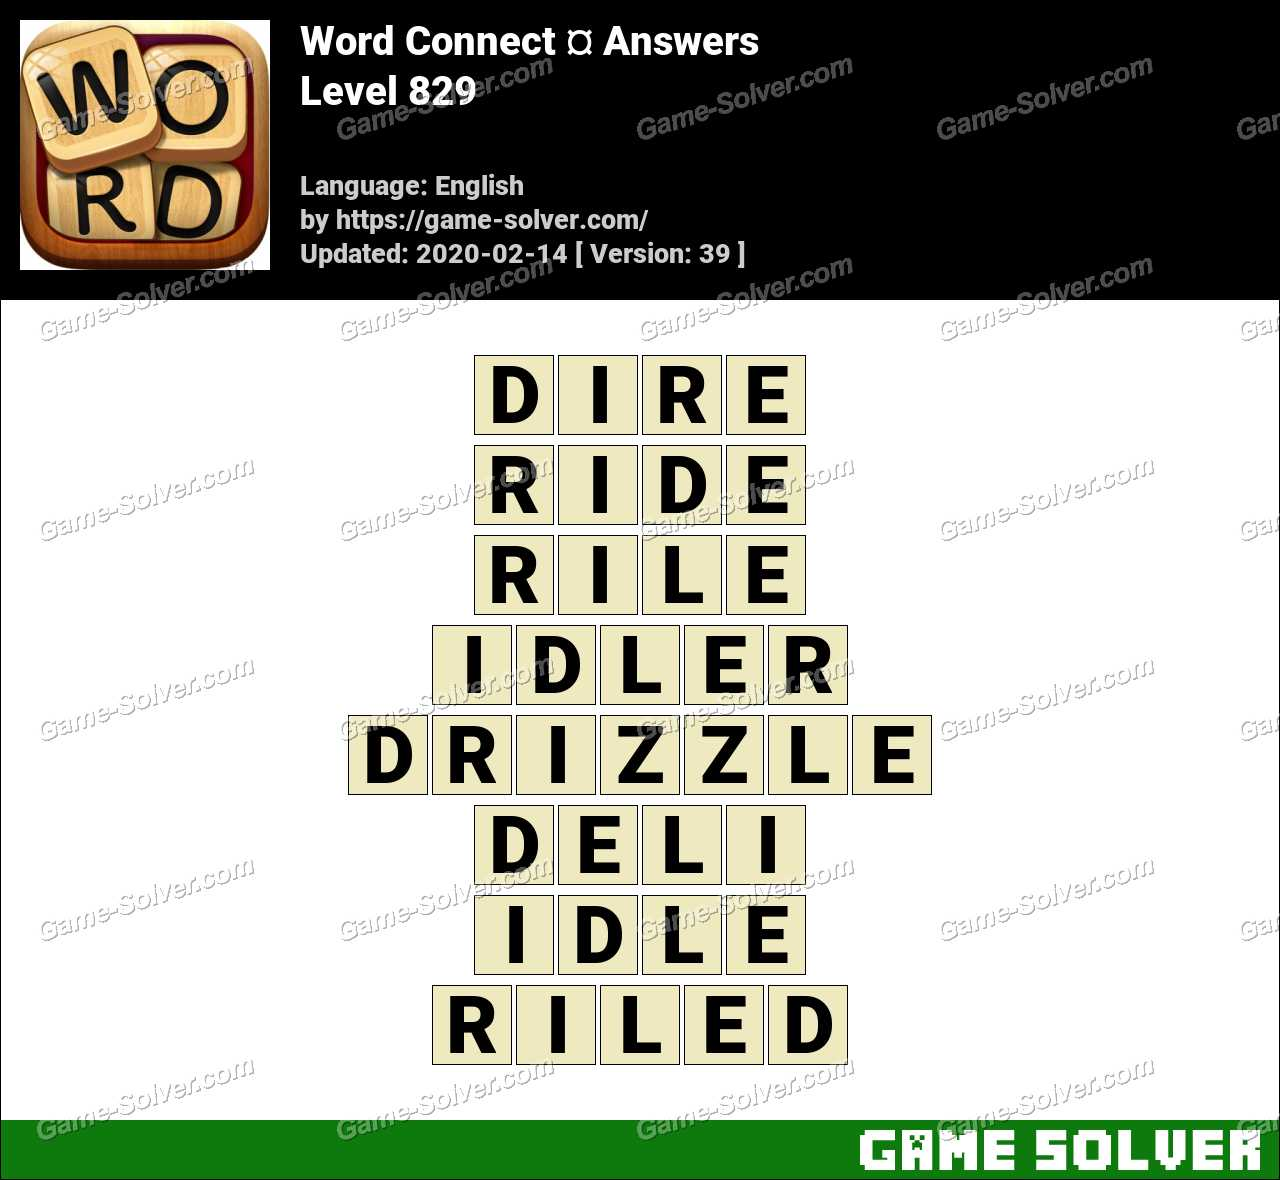 Word Connect Level 829 Answers